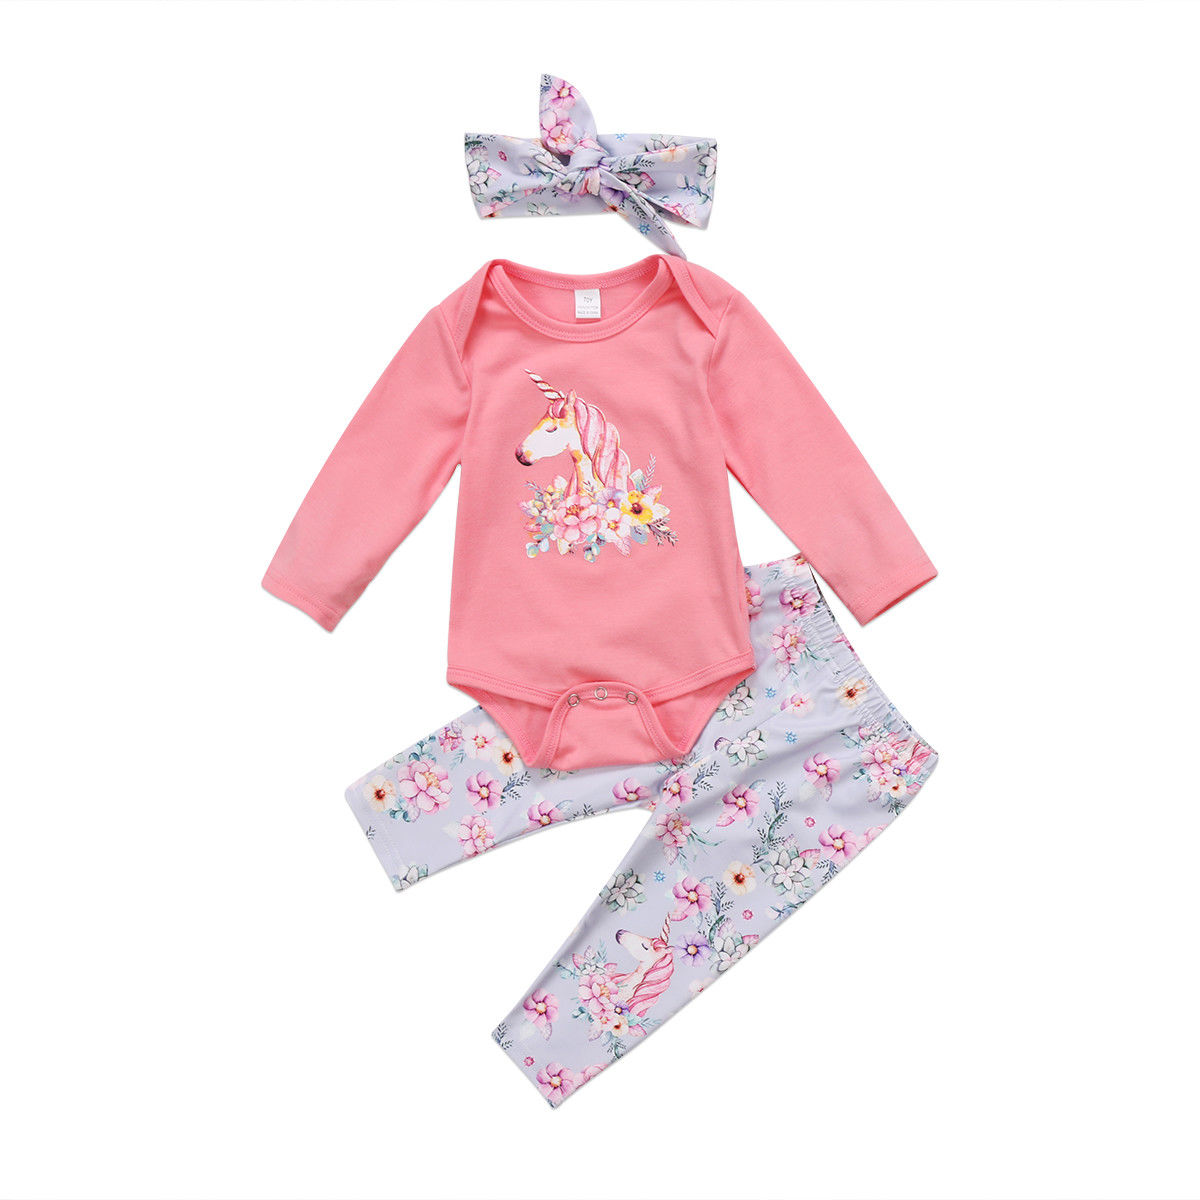 2017 Brand New Toddler Infant Newborn Baby Girls Unicorn Long Sleeve Top Romper Long Pants Headband 3Pcs Outfits Autumn Clothes baby girl 1st birthday outfits short sleeve infant clothing sets lace romper dress headband shoe toddler tutu set baby s clothes